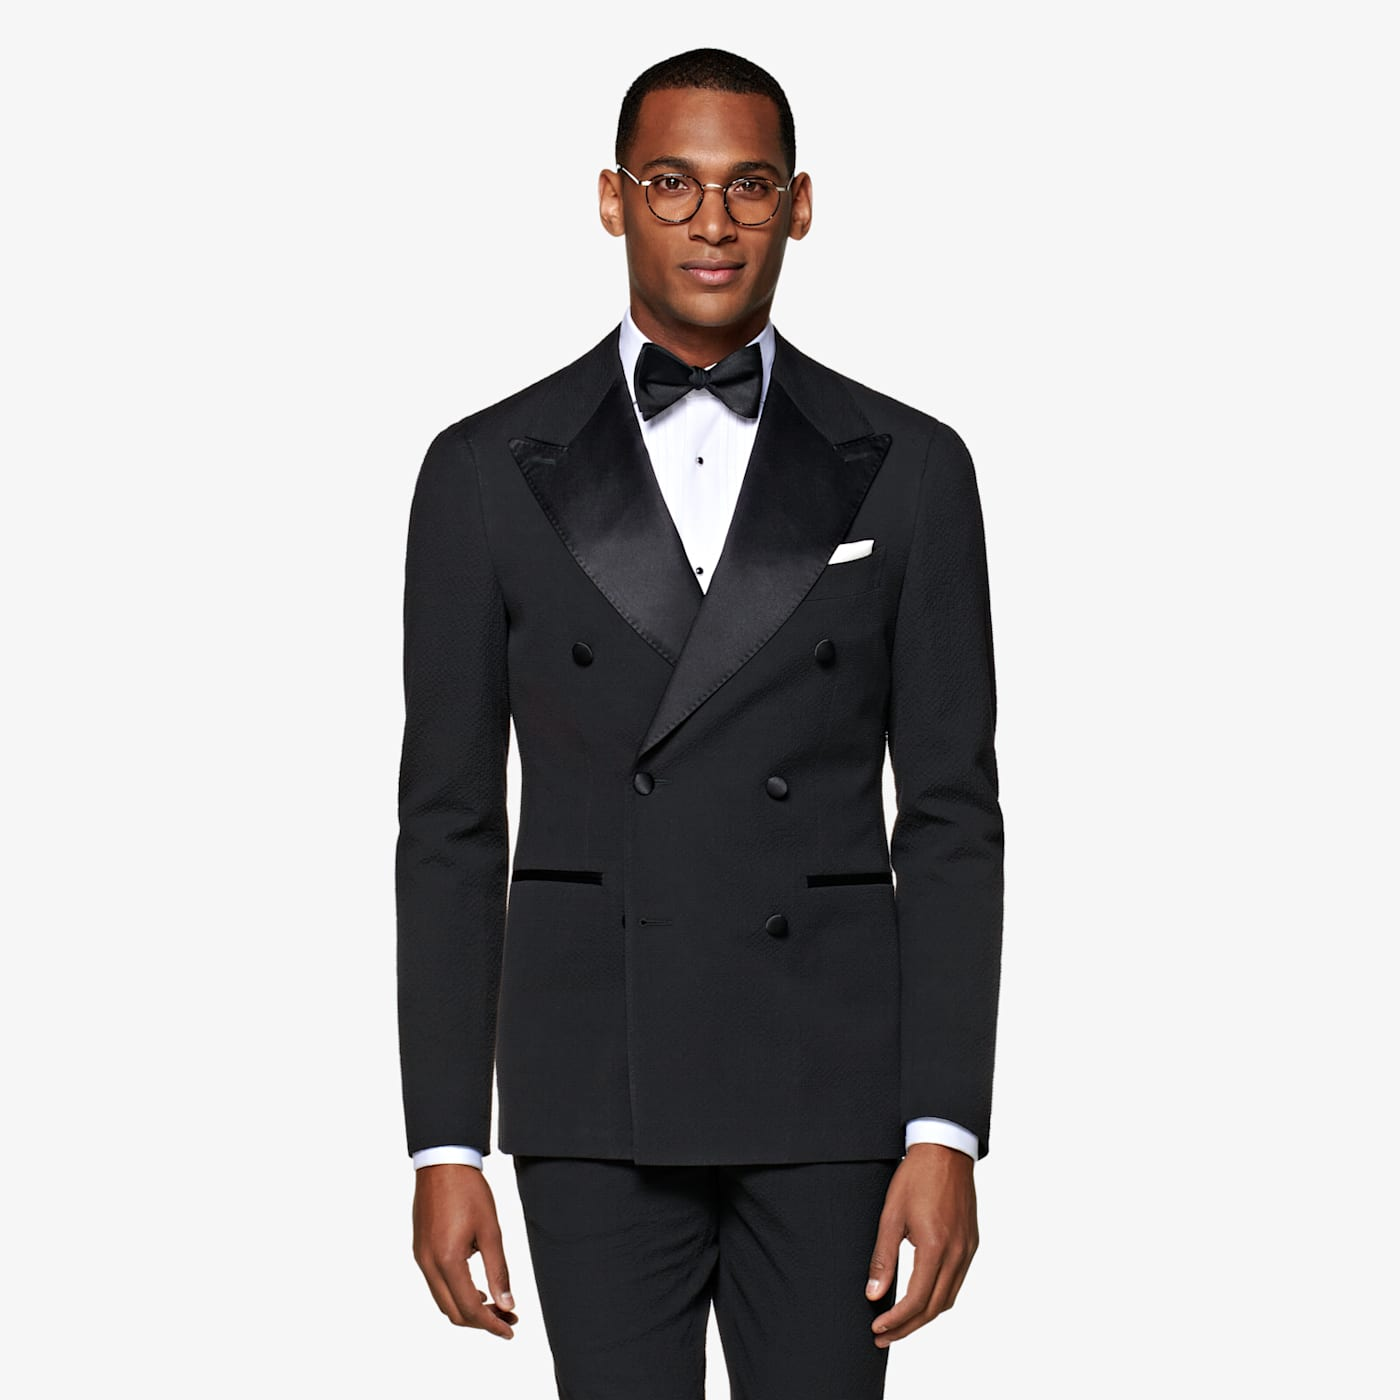 Edwardian Men's Formal Wear Black Havana Tuxedo Suit $599.00 AT vintagedancer.com